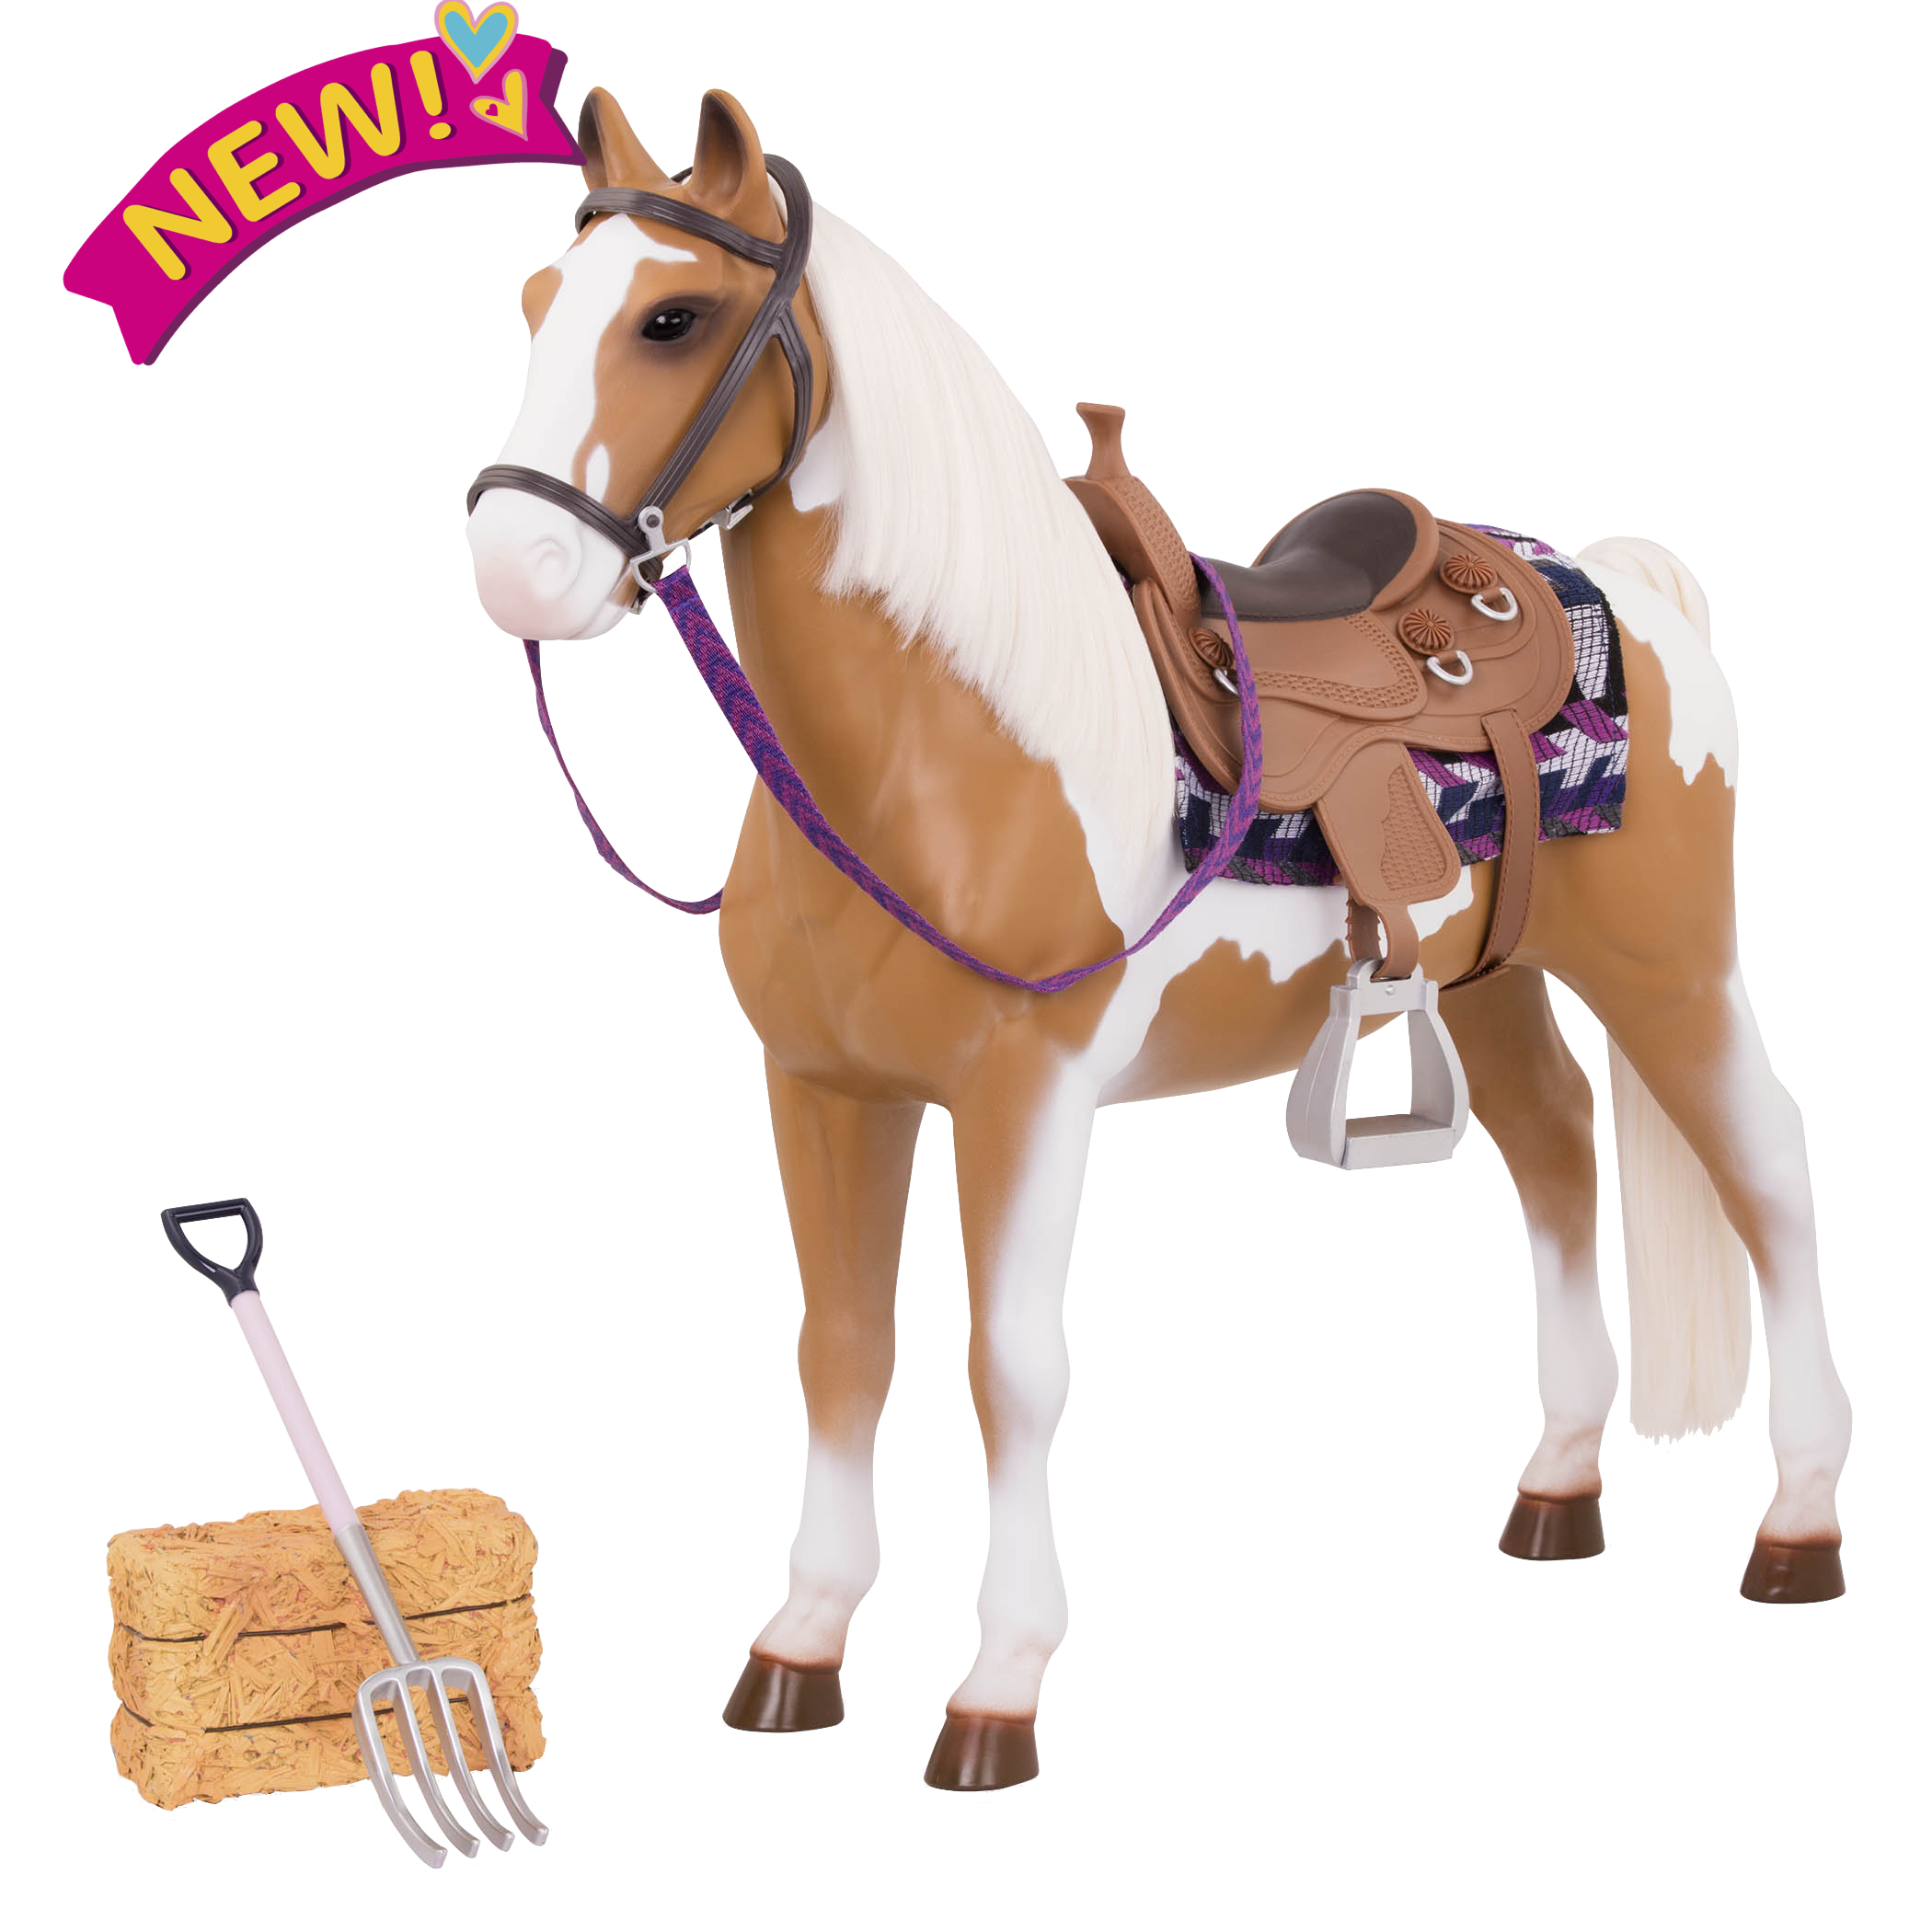 20-inch Stable Horse Toy for Dolls